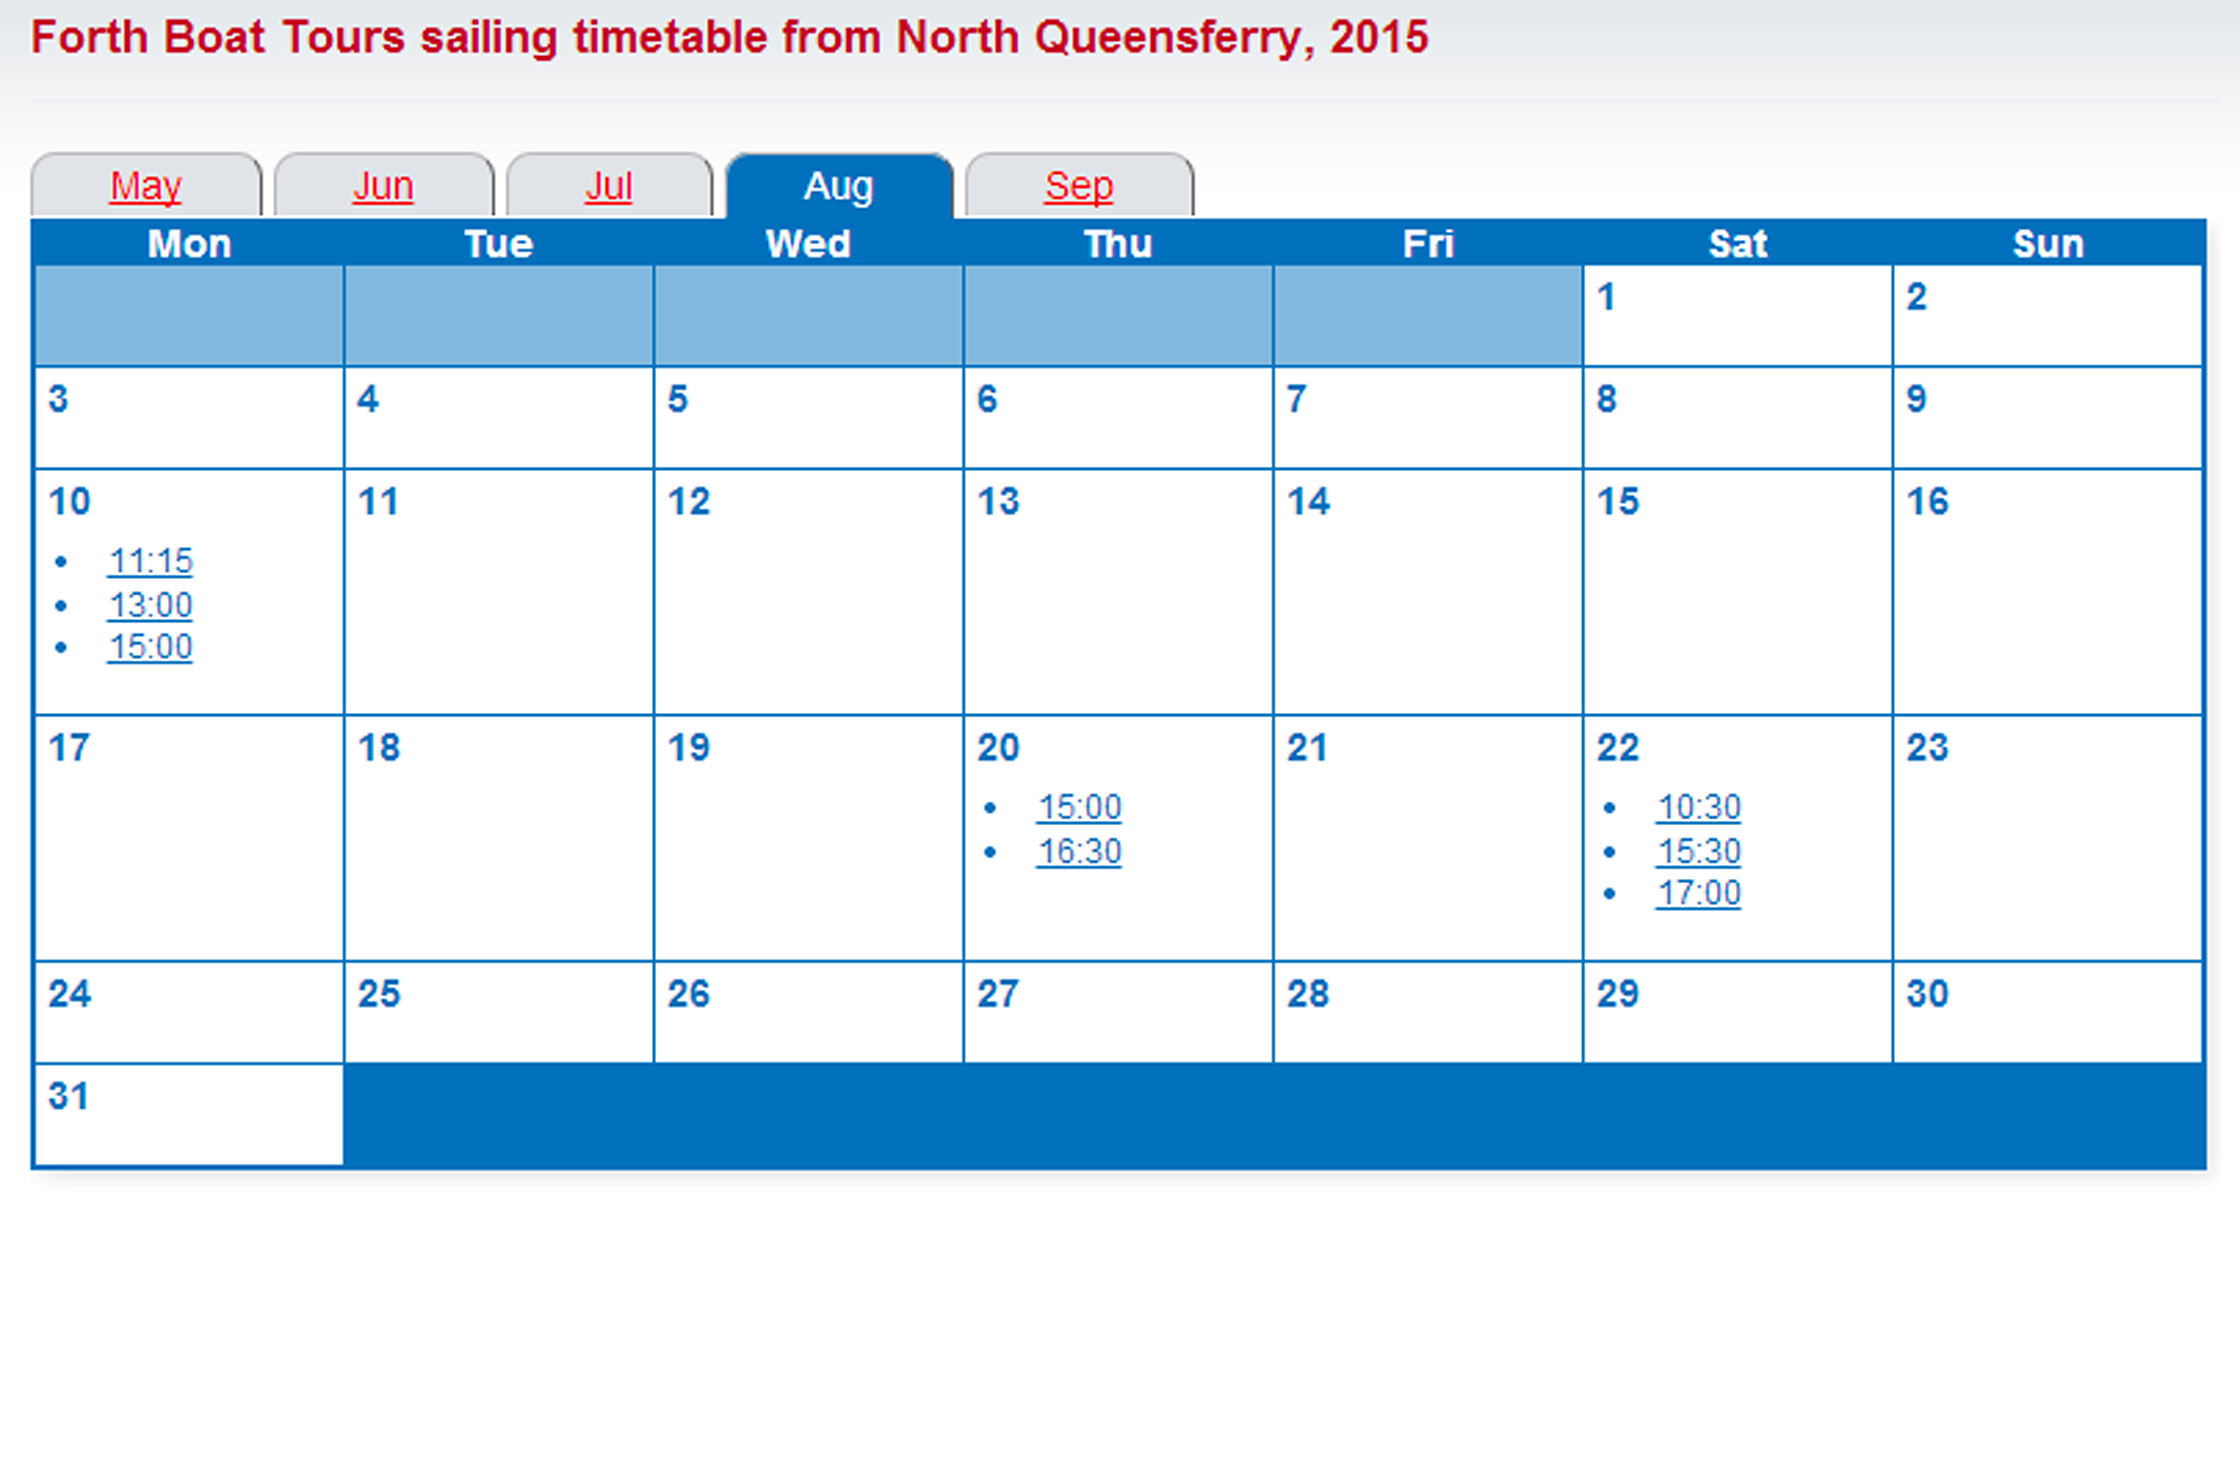 The North Queensferry timetable